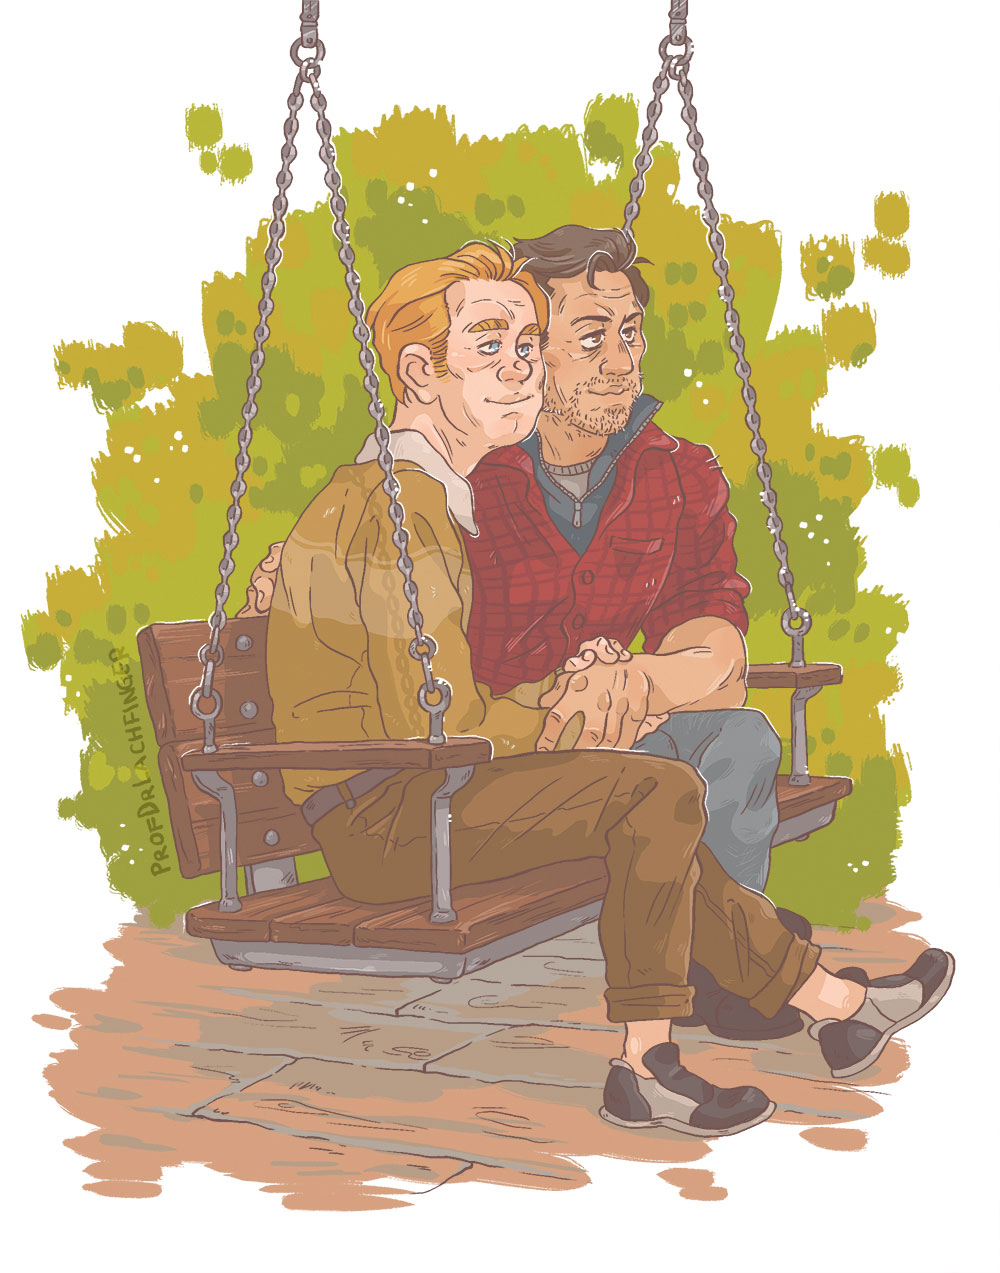 On the Swing [John Rambo and Mitch] by ProfDrLachfinger